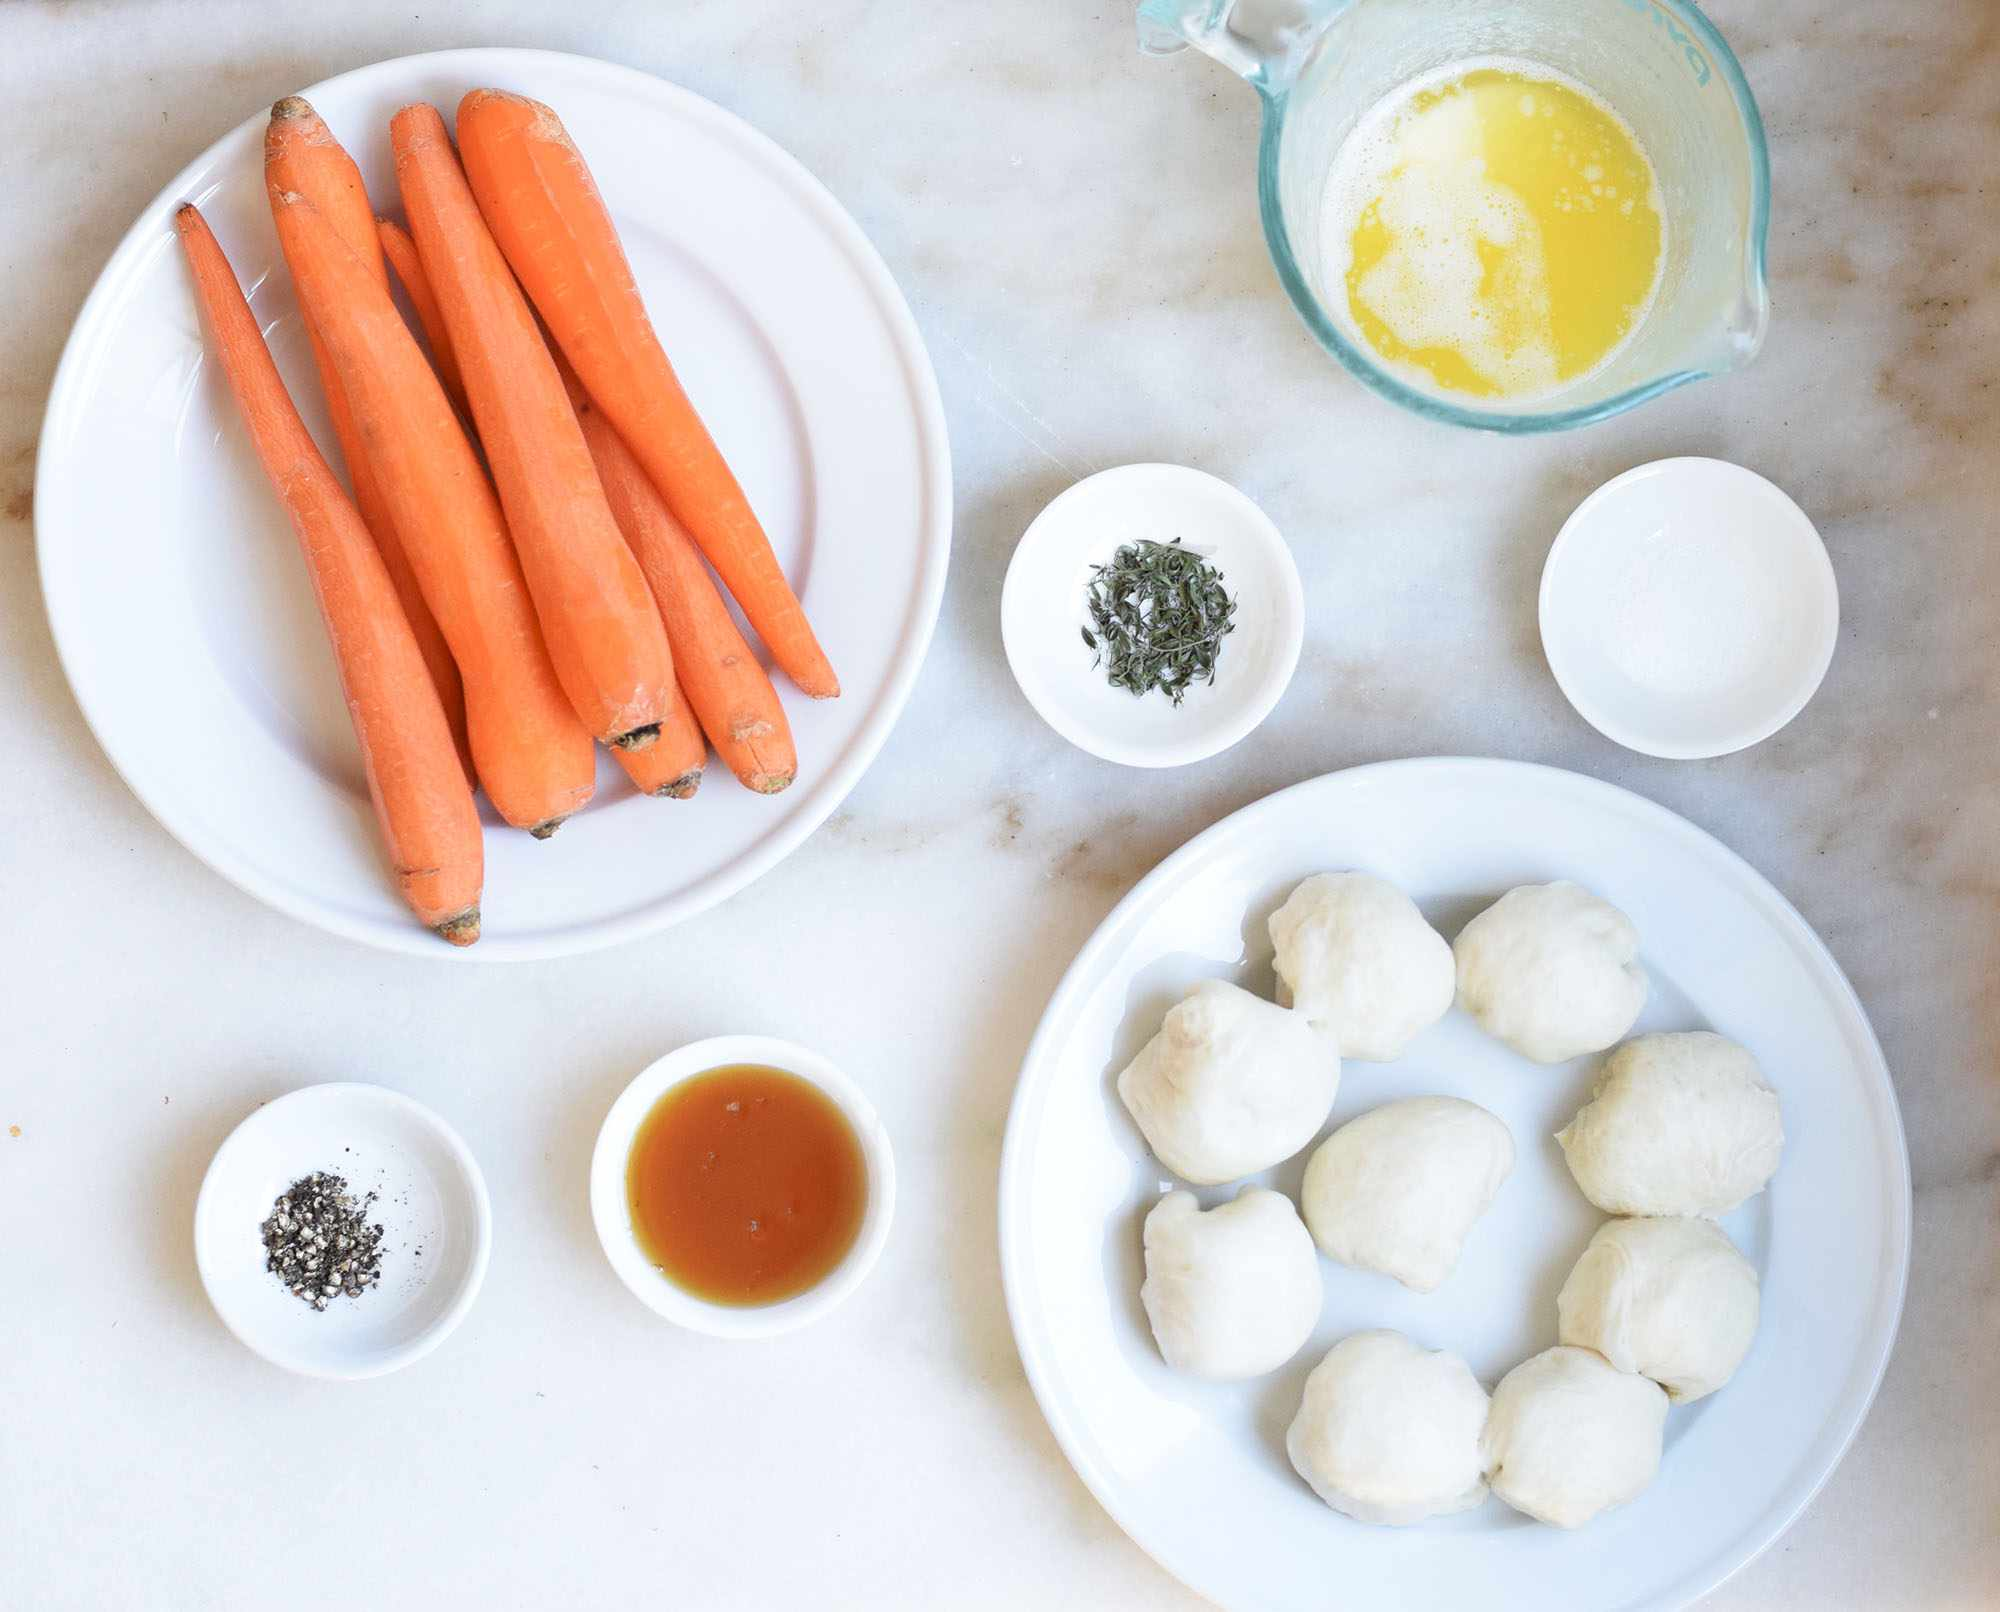 Ingredients for preparing carrots and dinner rolls